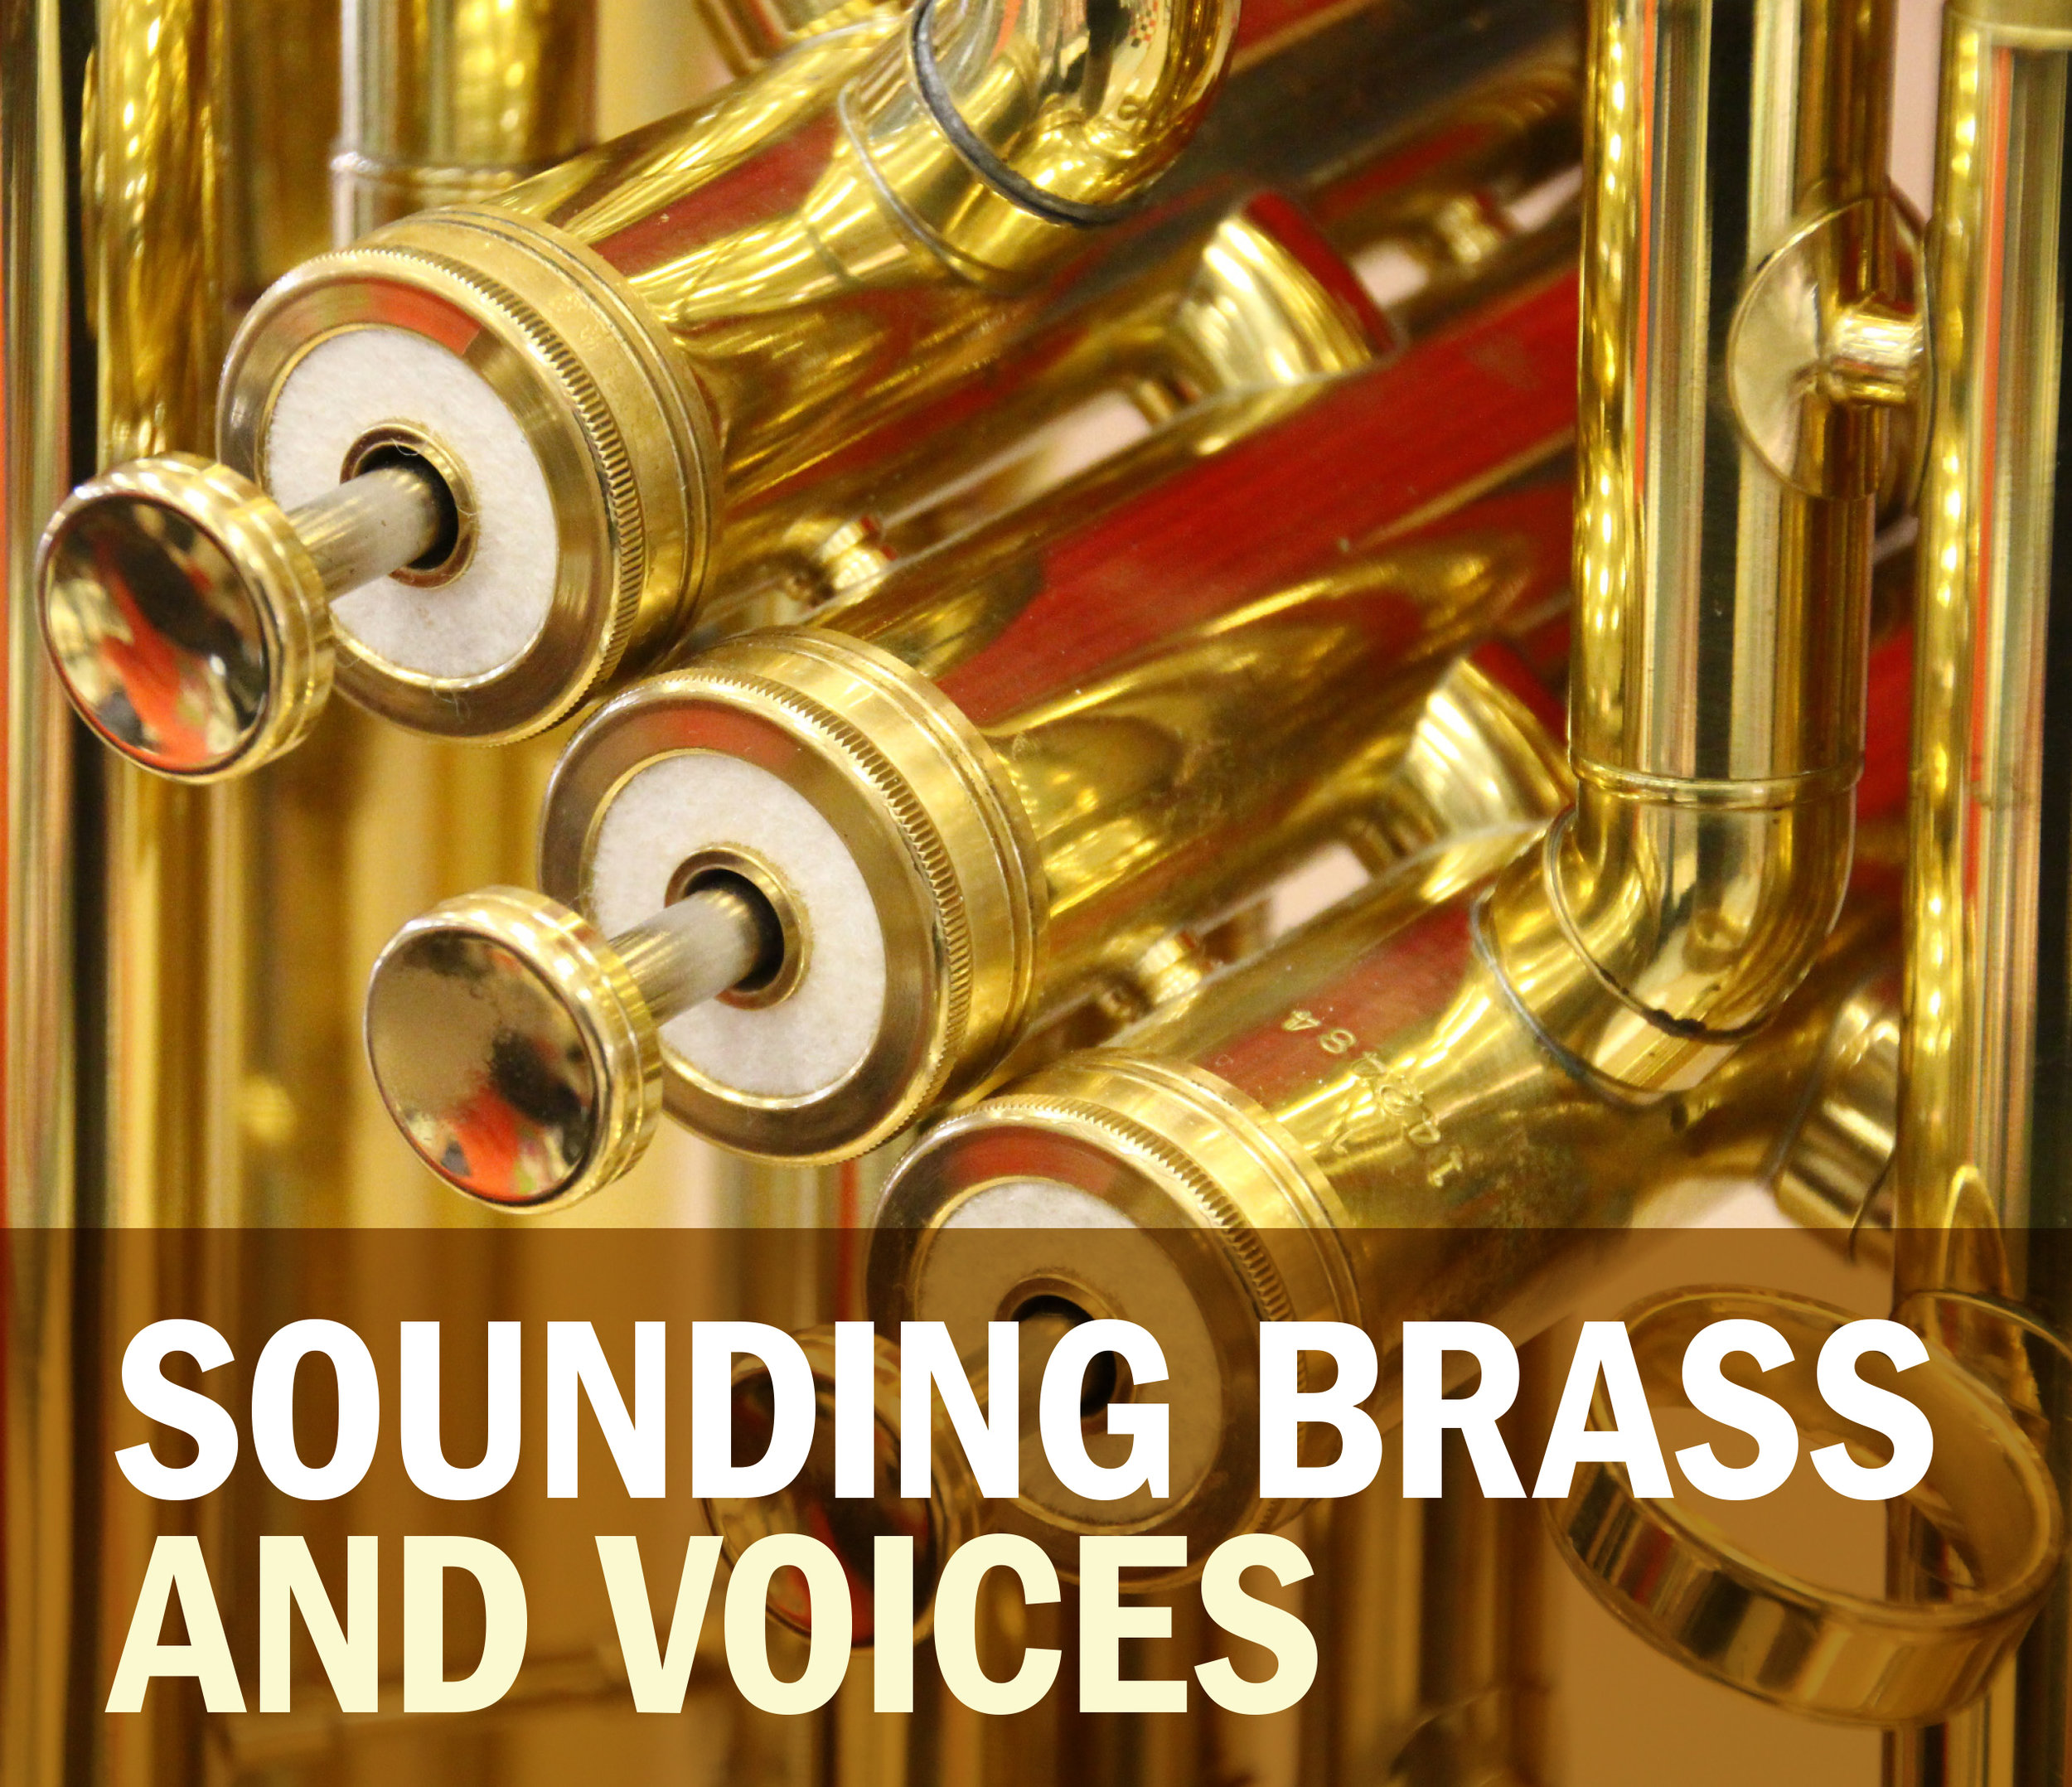 A4_SoundingBrass_print-ready.jpg